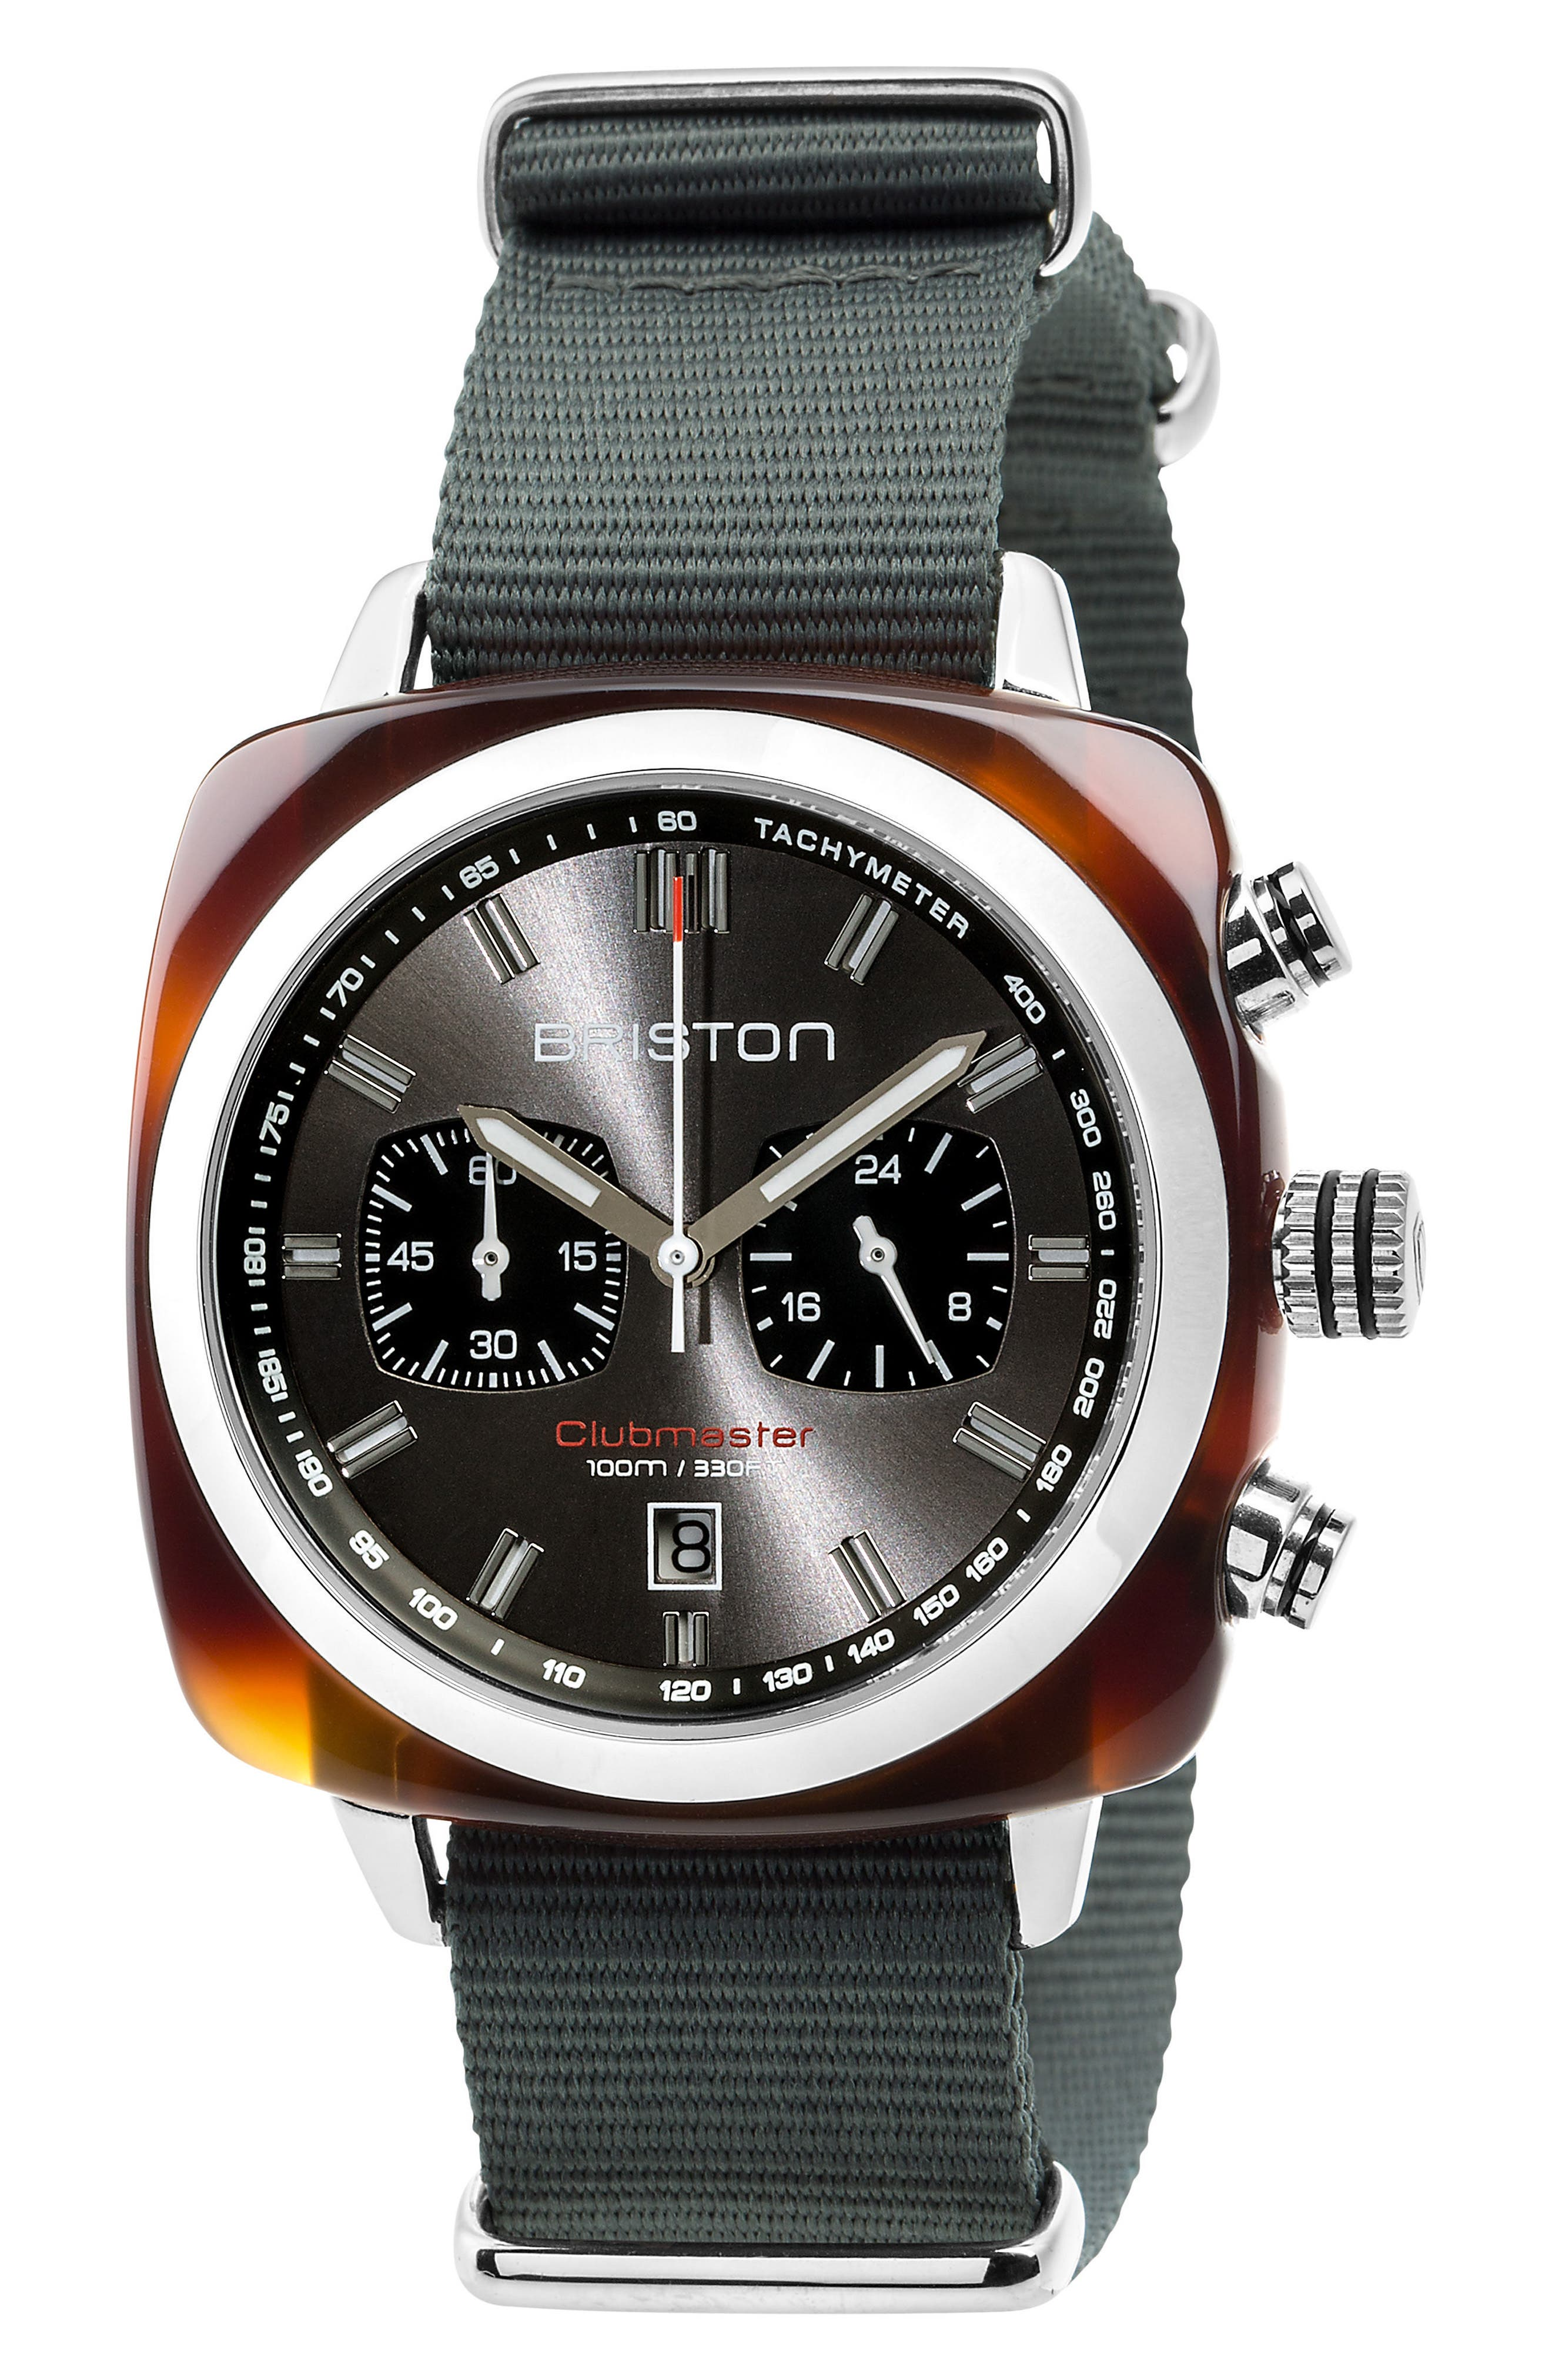 Main Image - Briston Watches Clubmaster Sport Chronograph Nylon Strap Watch, 42mm